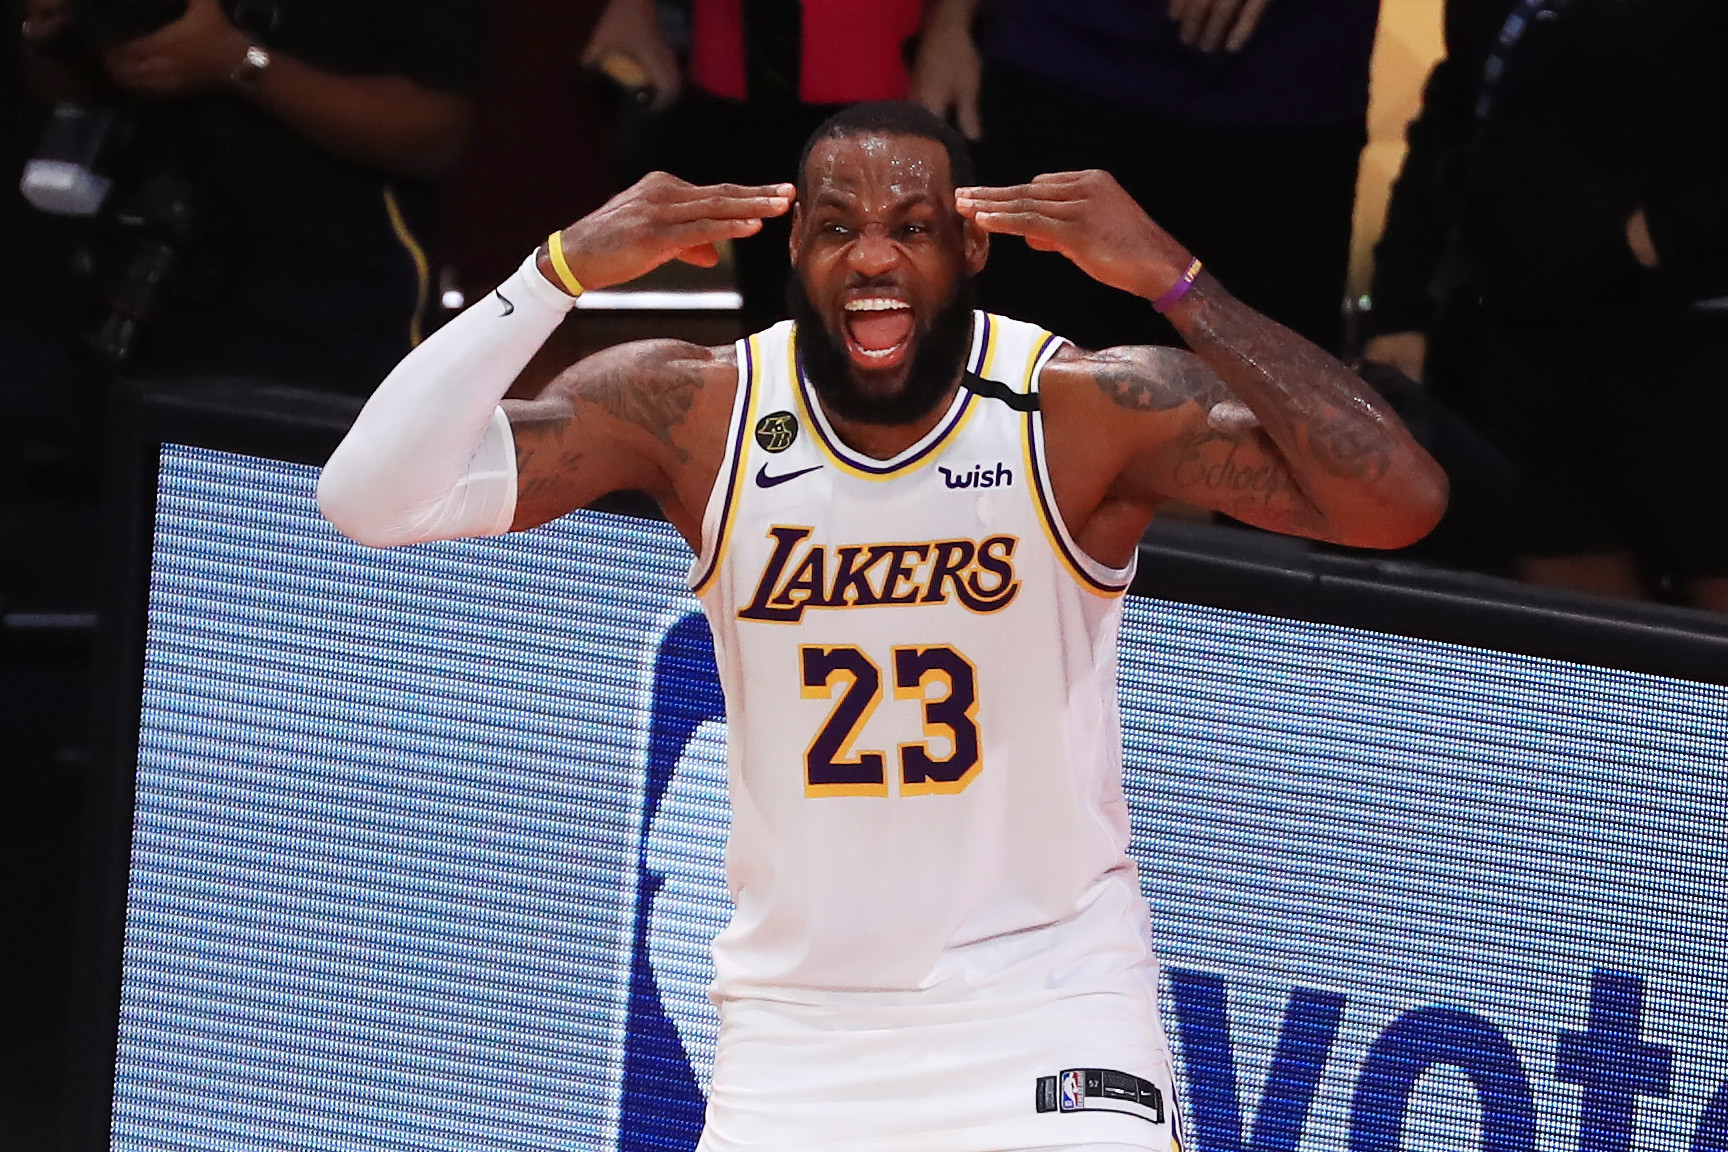 LeBron James is a reigning champion with the Los Angeles Lakers and could miss Tokyo 2020 if his team make the NBA Finals ©Getty Images